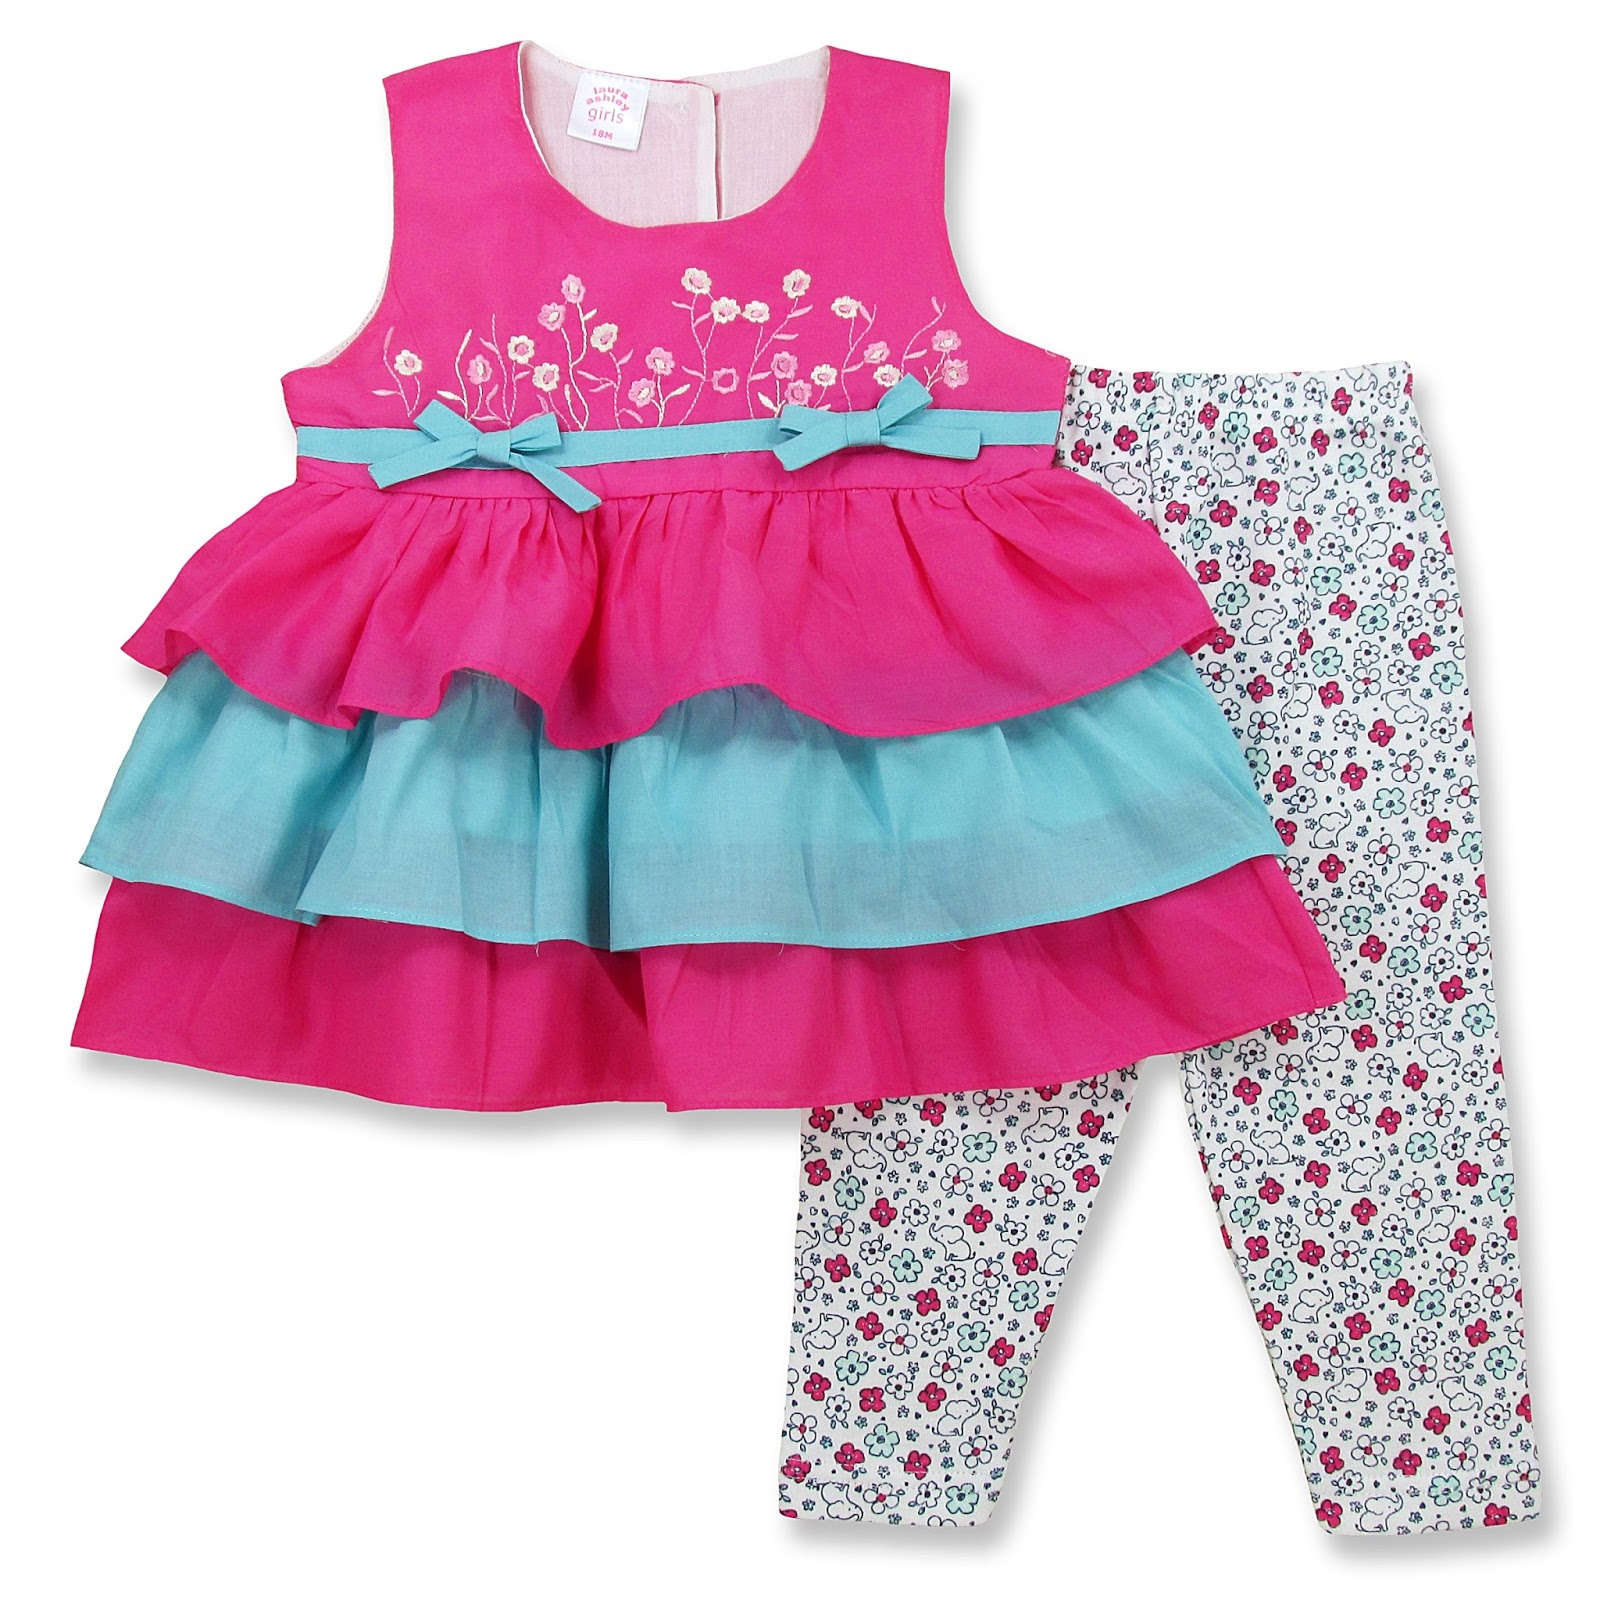 Wholesale branded baby clothes: Wholesale baby clothes ...